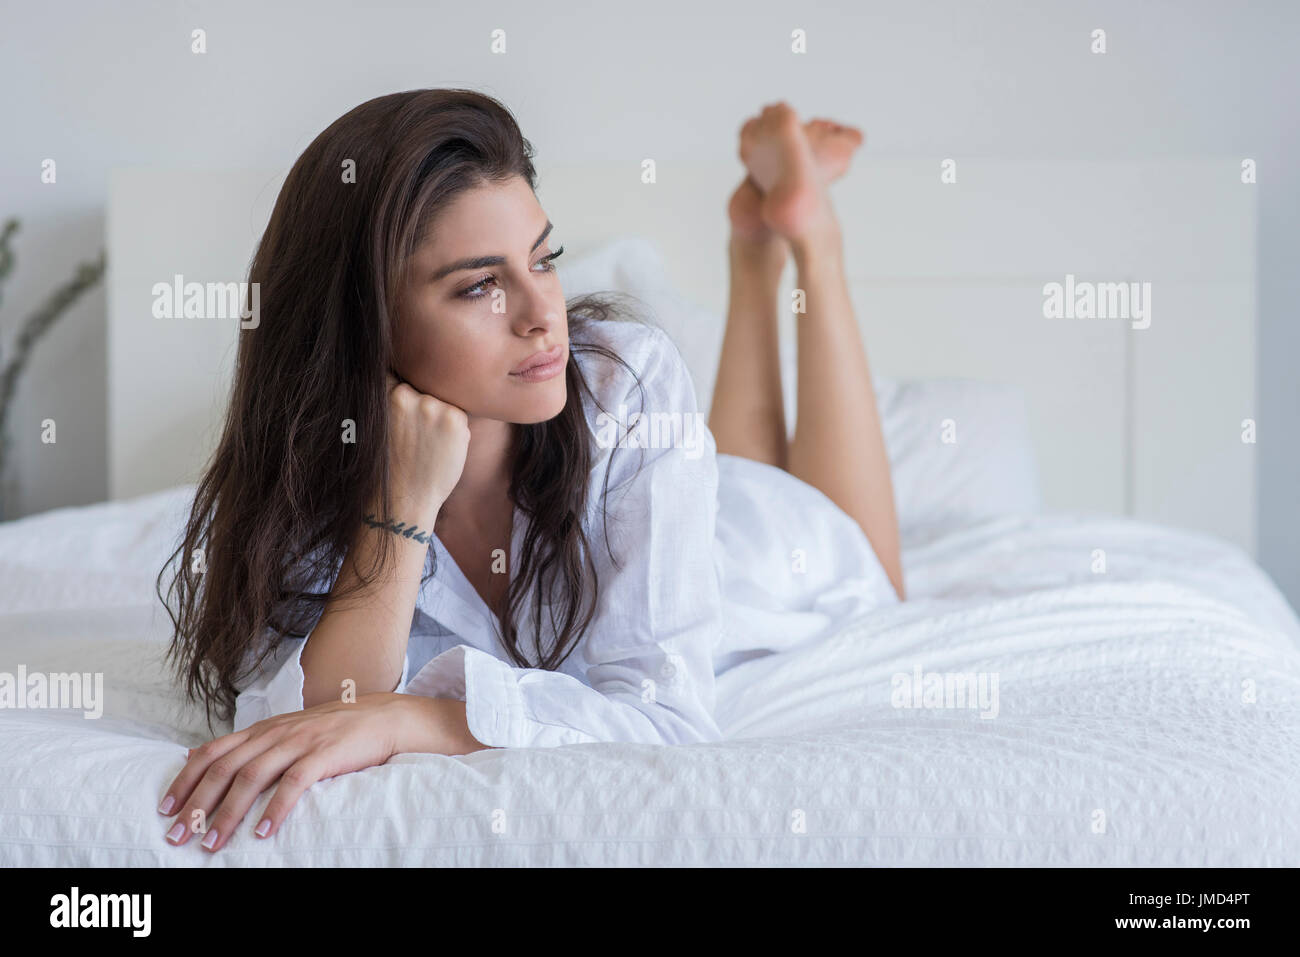 Young woman lying on bed and wearing a white shirt. She is leaning on elbow and looking away. - Stock Image